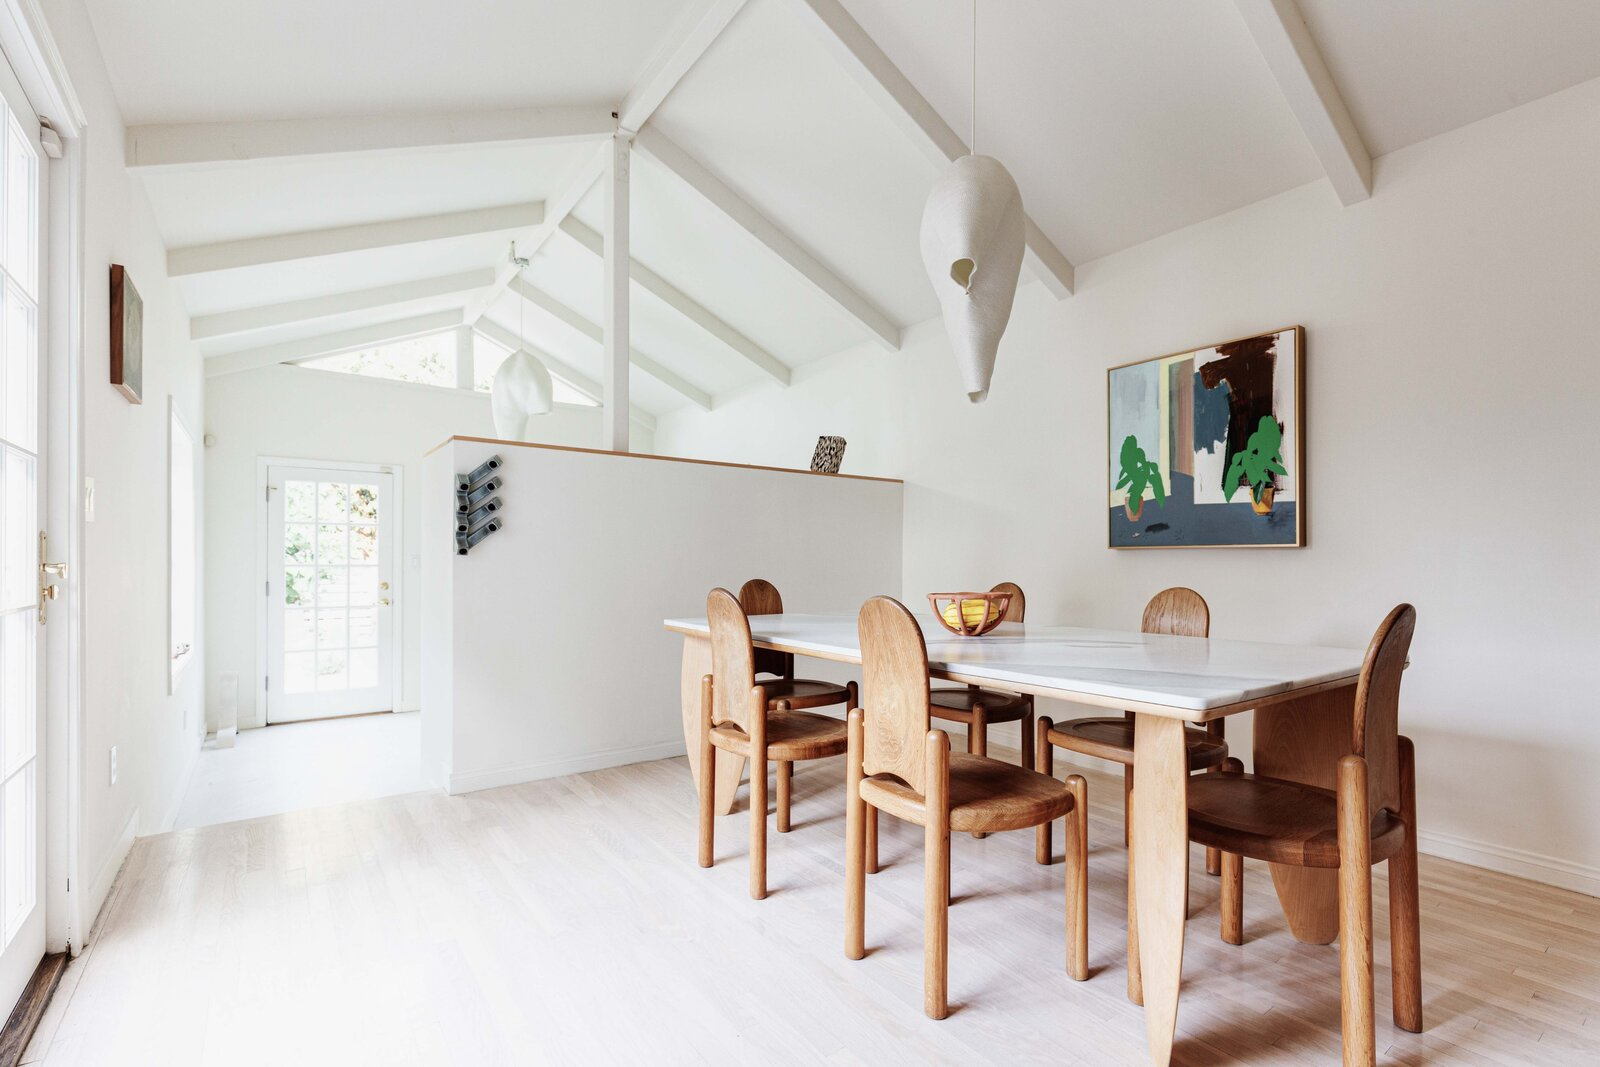 A vaulted ceiling with exposed beams creates an airy atmosphere for the dining area while French doors provide direct access to the patio.  Photo 7 of 16 in Listed at $950K, This Clean-Lined Cottage in Los Angeles Is a Fresh Take on City Living